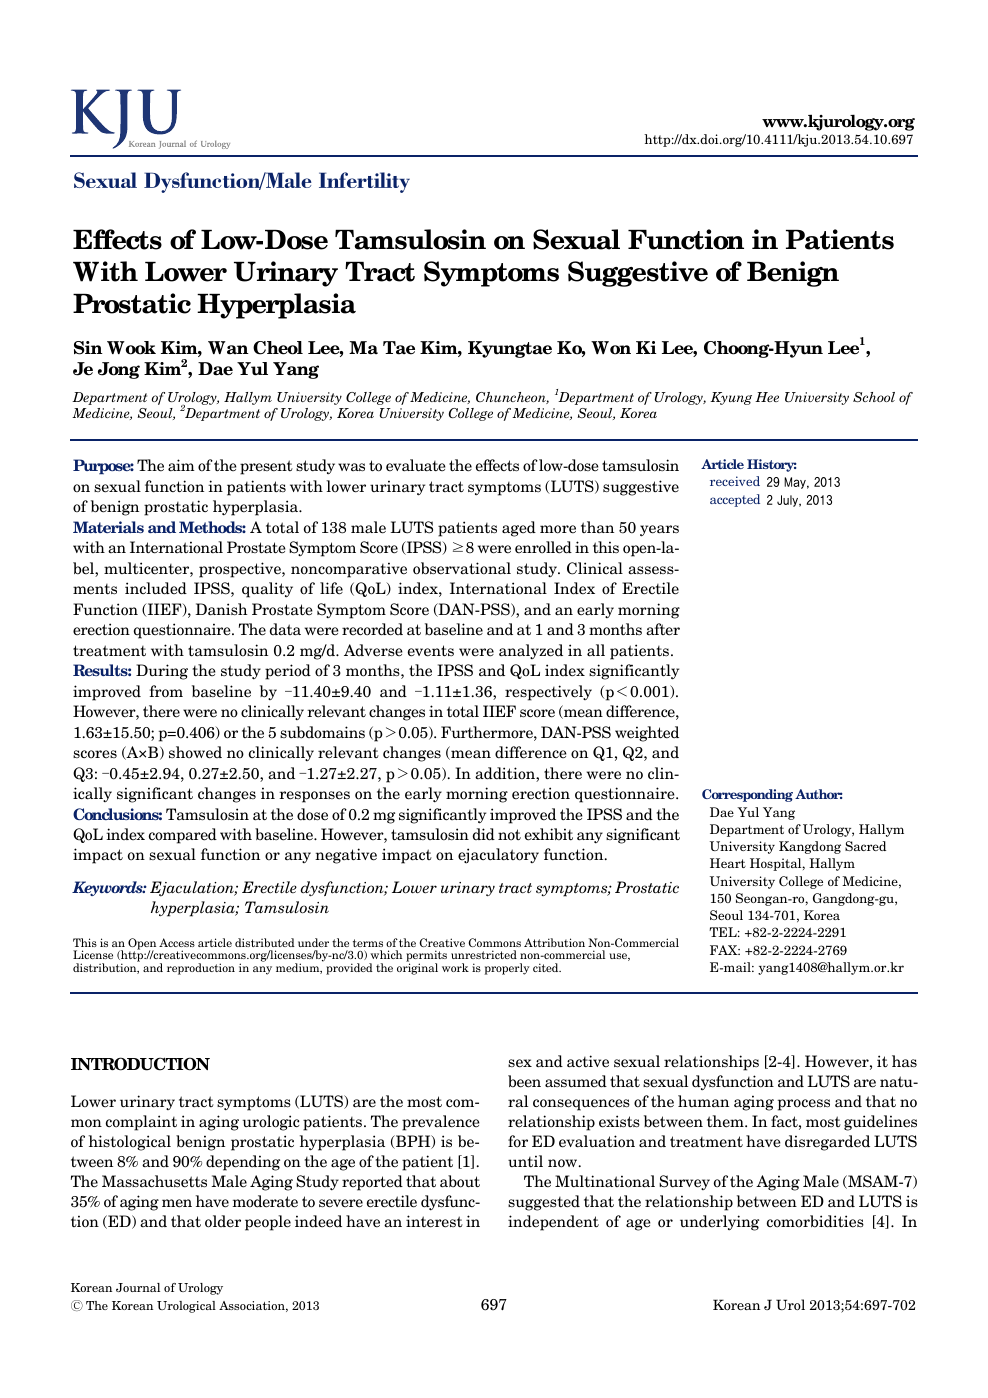 Effects of Low-Dose Tamsulosin on Sexual Function in